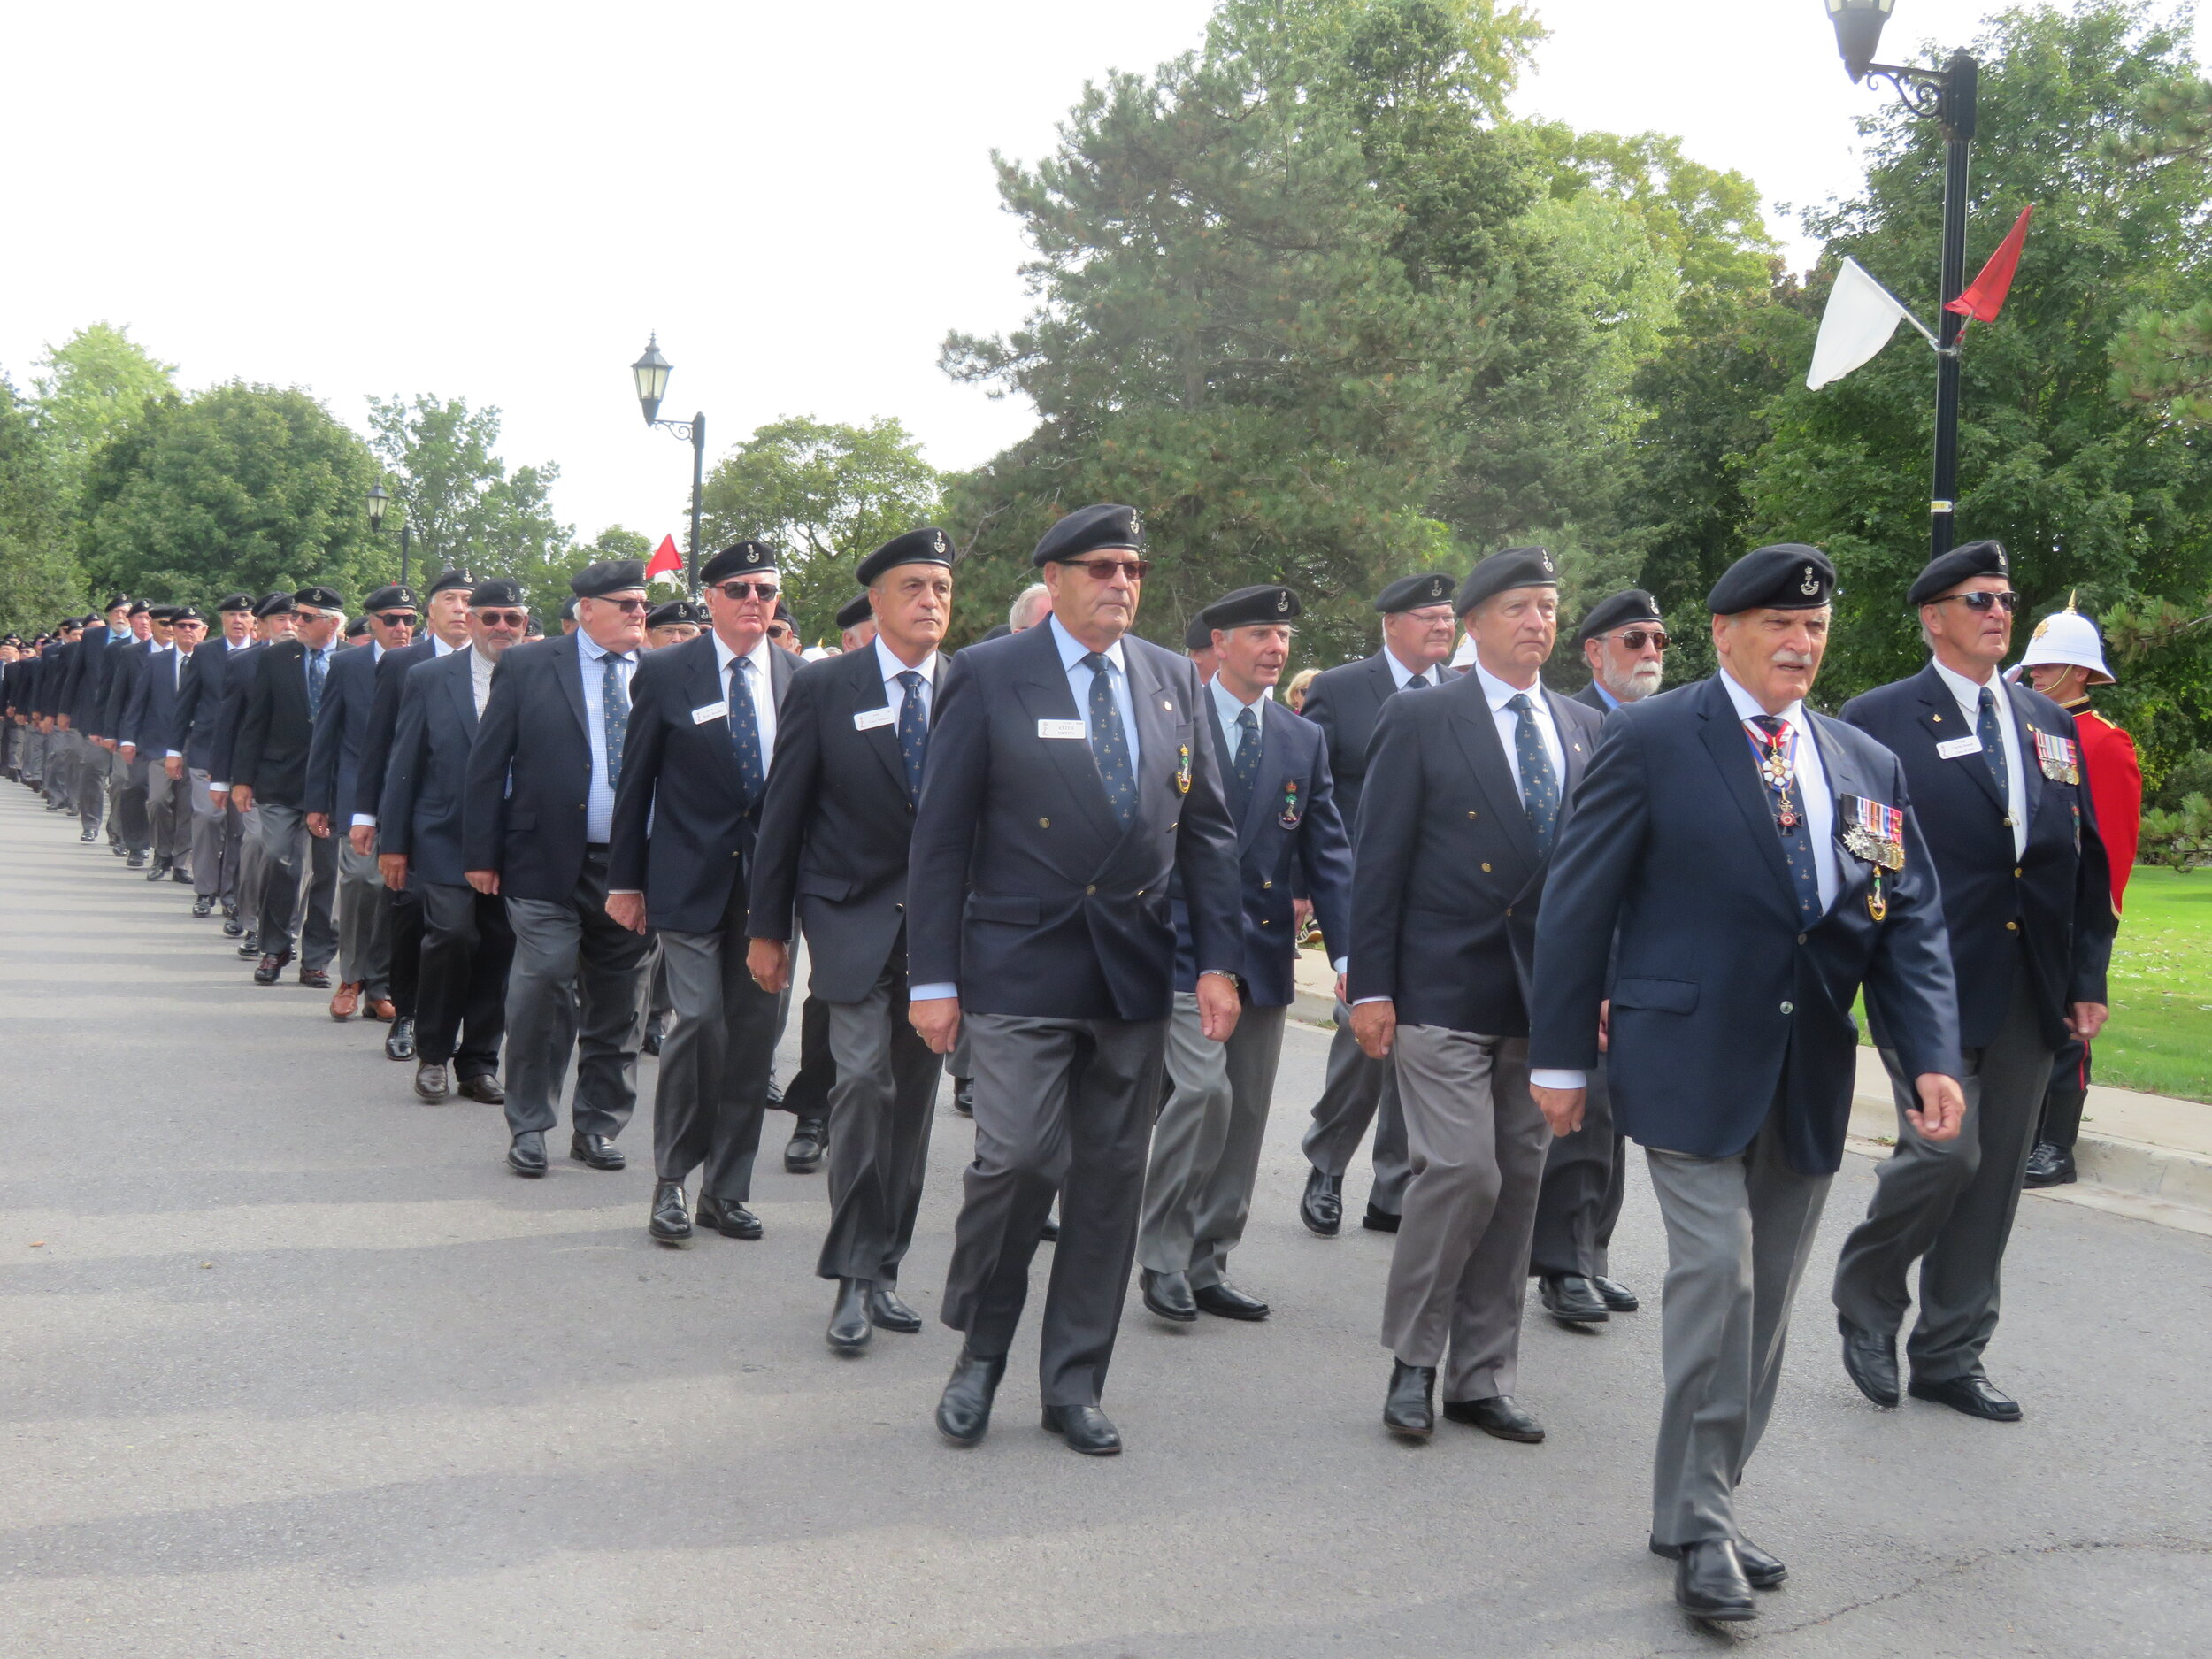 old brigaders - class of 69 with lgen (retd) romeo dallaire